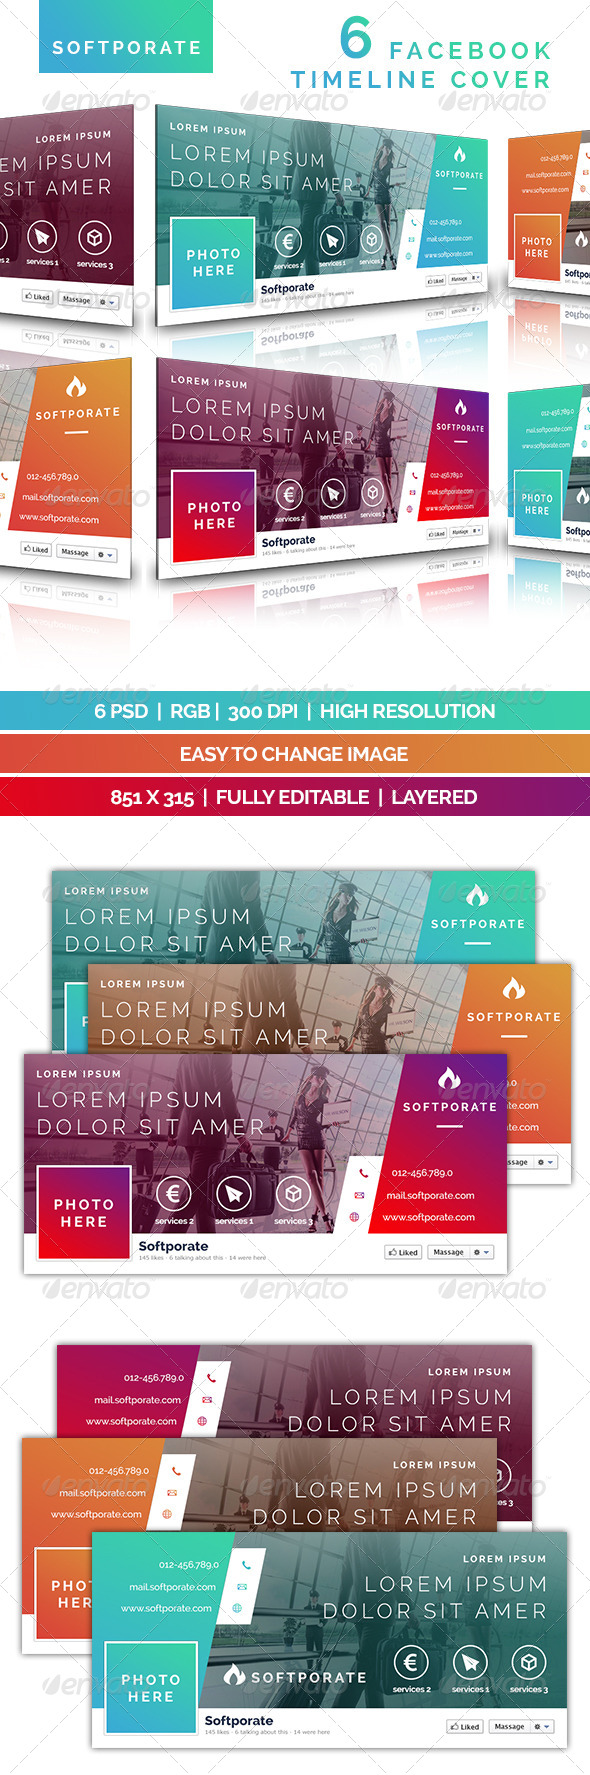 GraphicRiver Softporate Facebook Timeline Cover 7658552